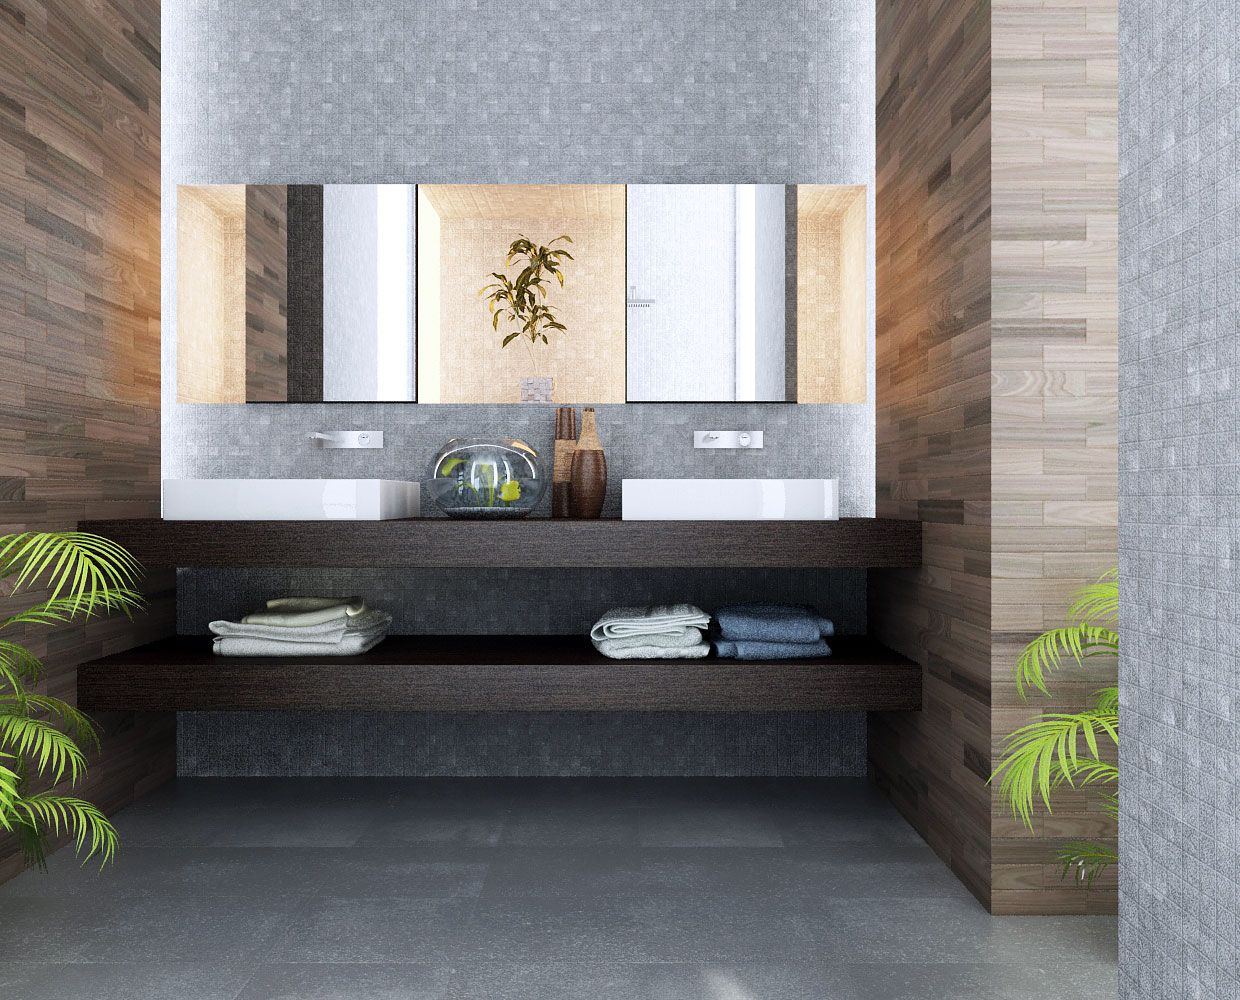 Bathroom Designs Modern interior design inspirations and articles - more designs at